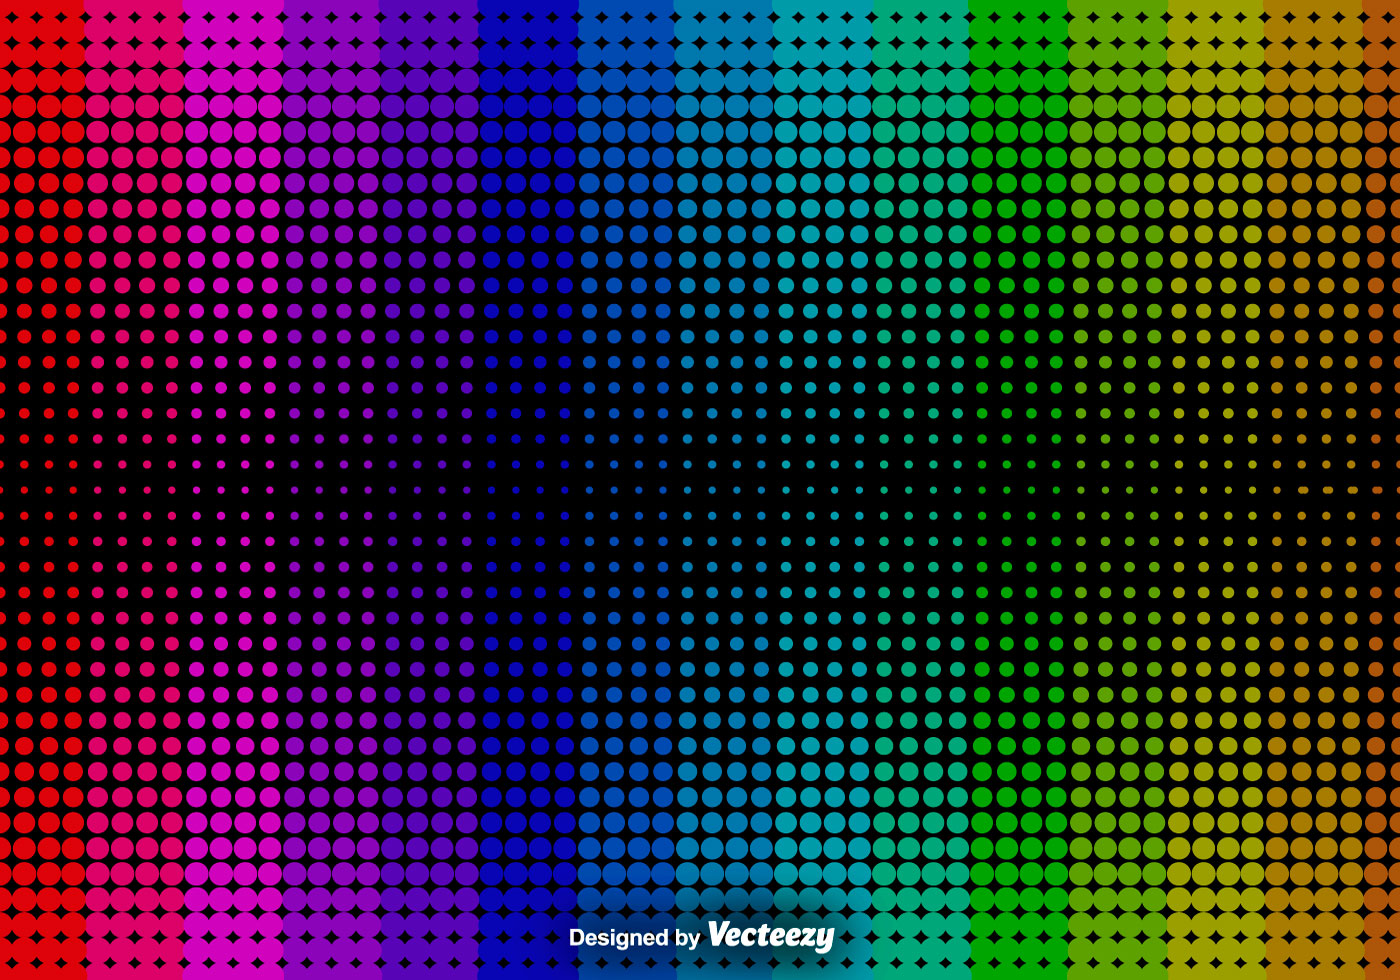 Black And White Dot Wallpaper Abstract Halftone Background Vector Background